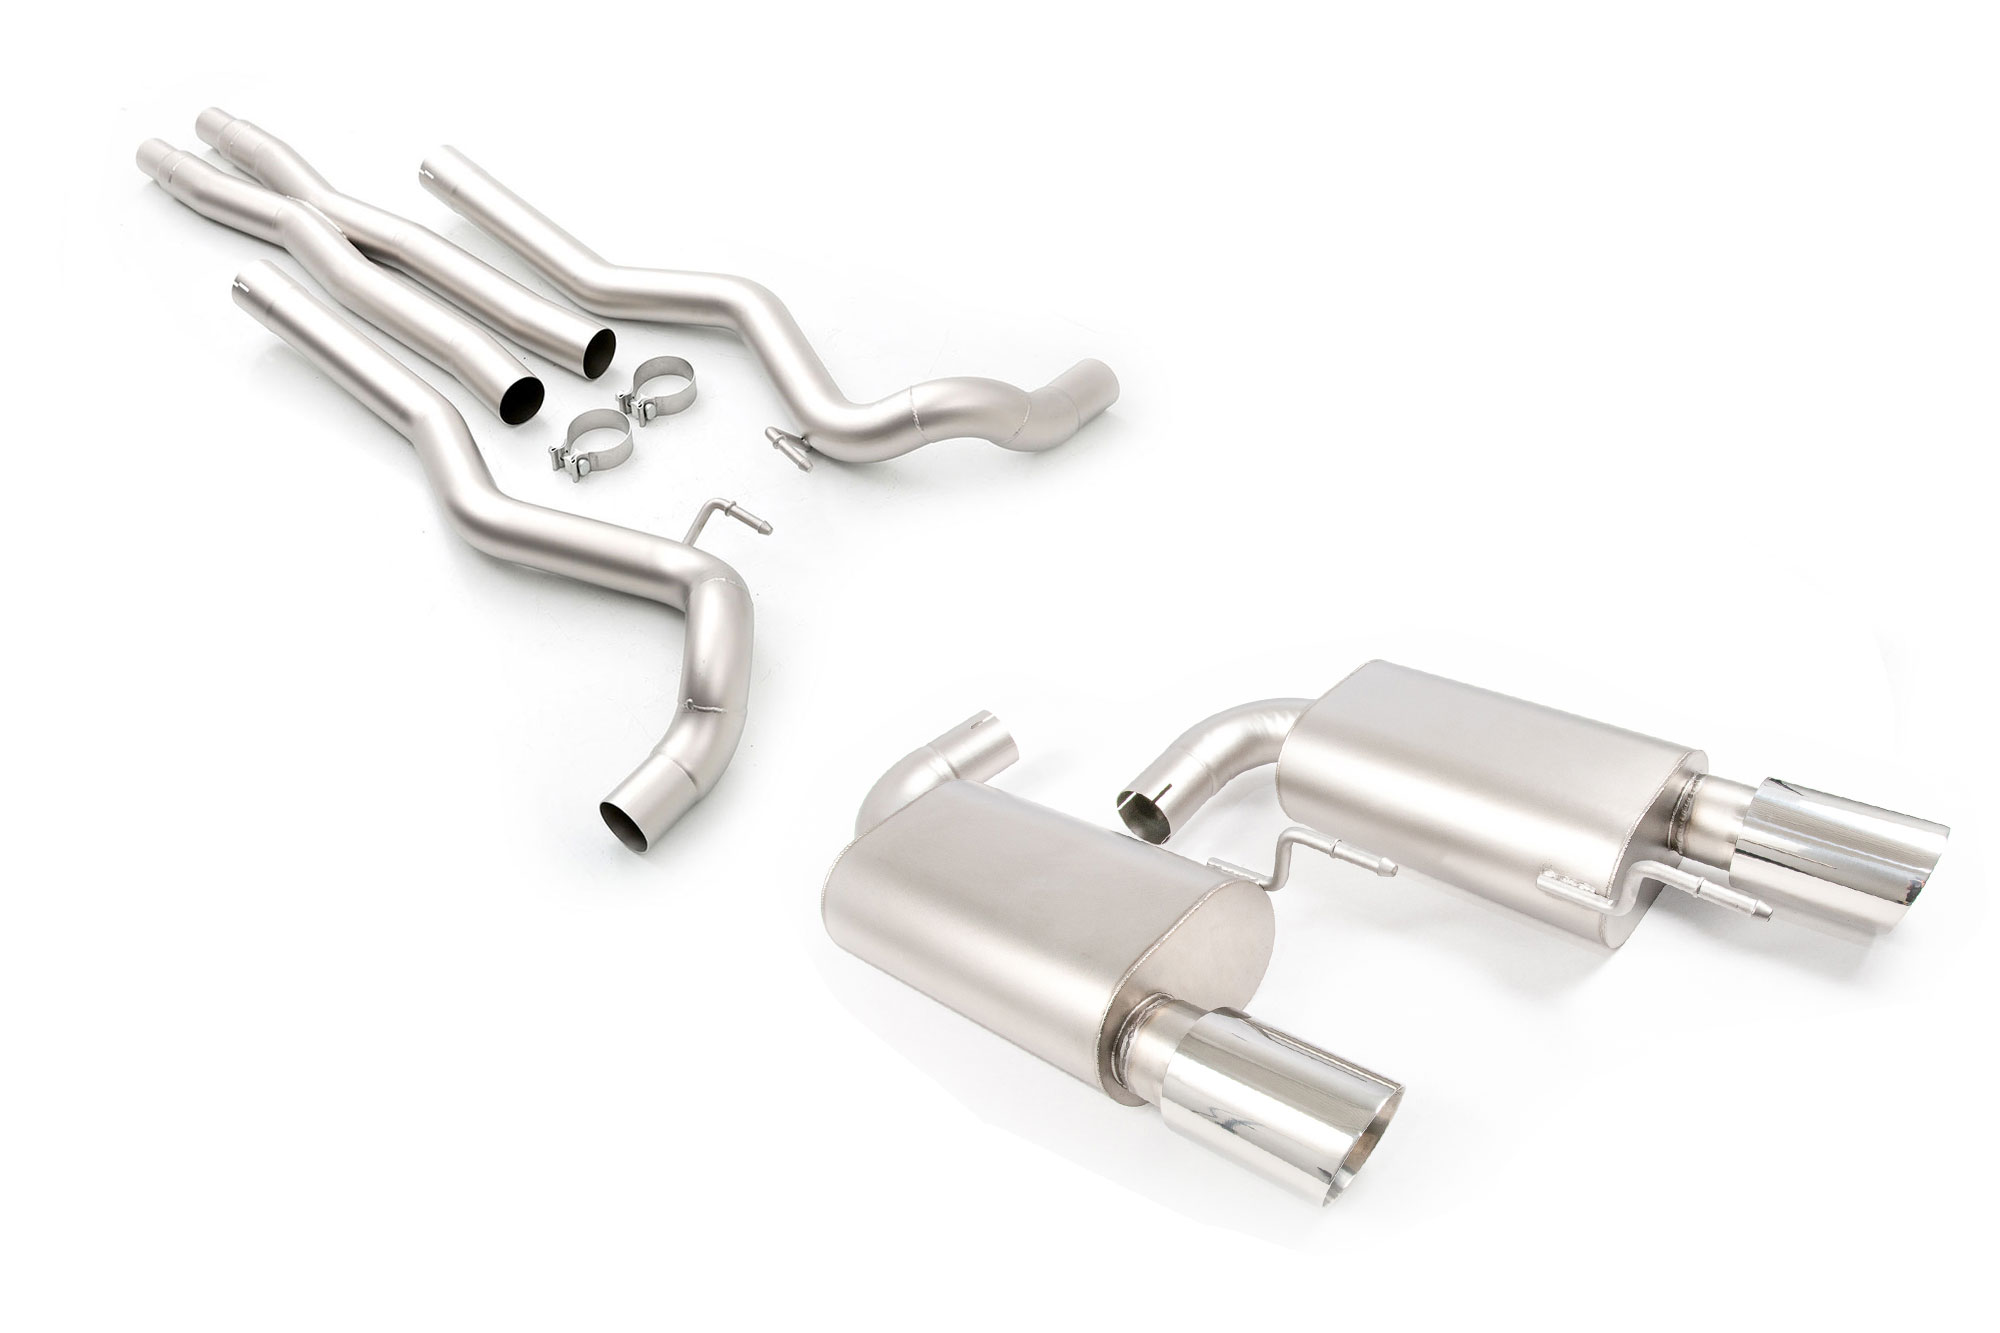 LTH Mustang GT Cat-Back Exhaust, Polished Tips (2015-2017)